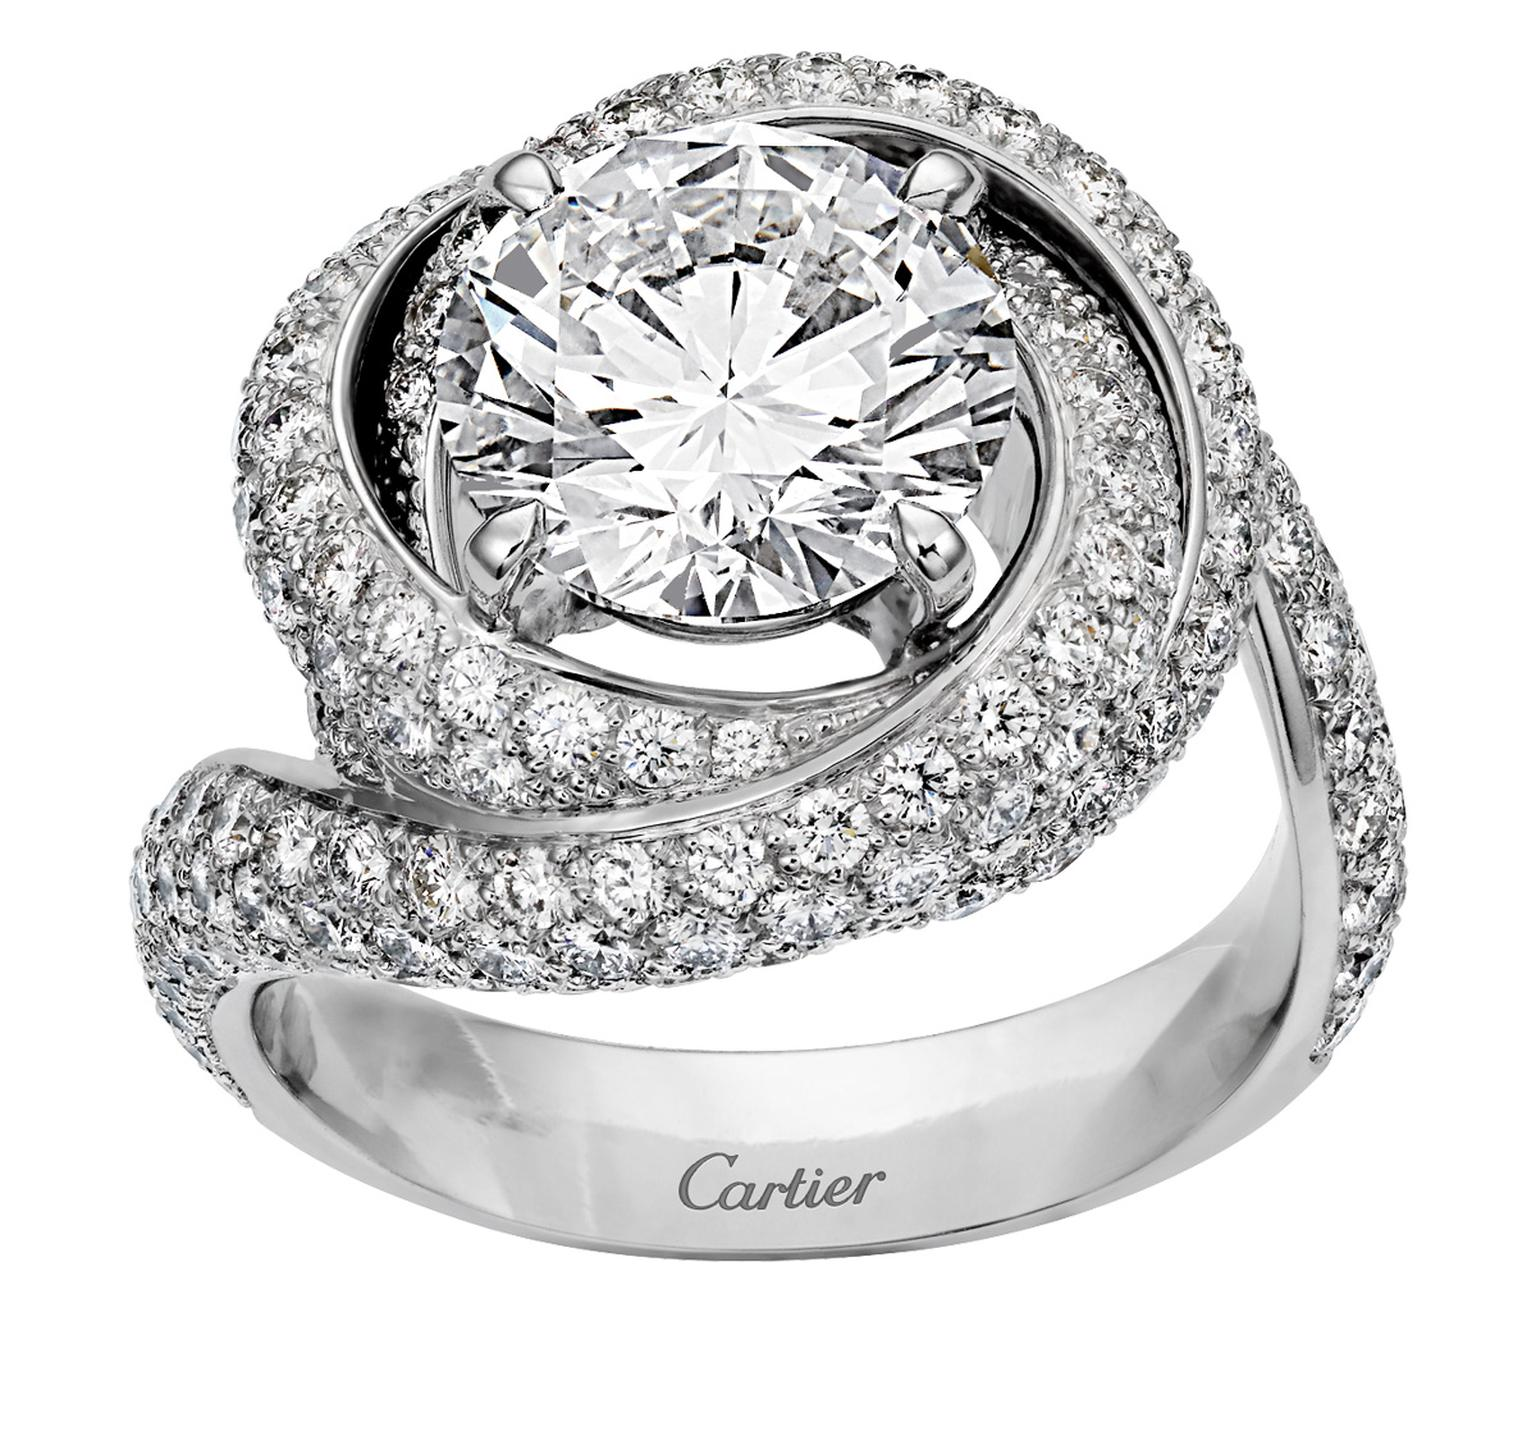 Cartier Trinity Ruban Solitaire platinum and diamond ring_20131122_Zoom